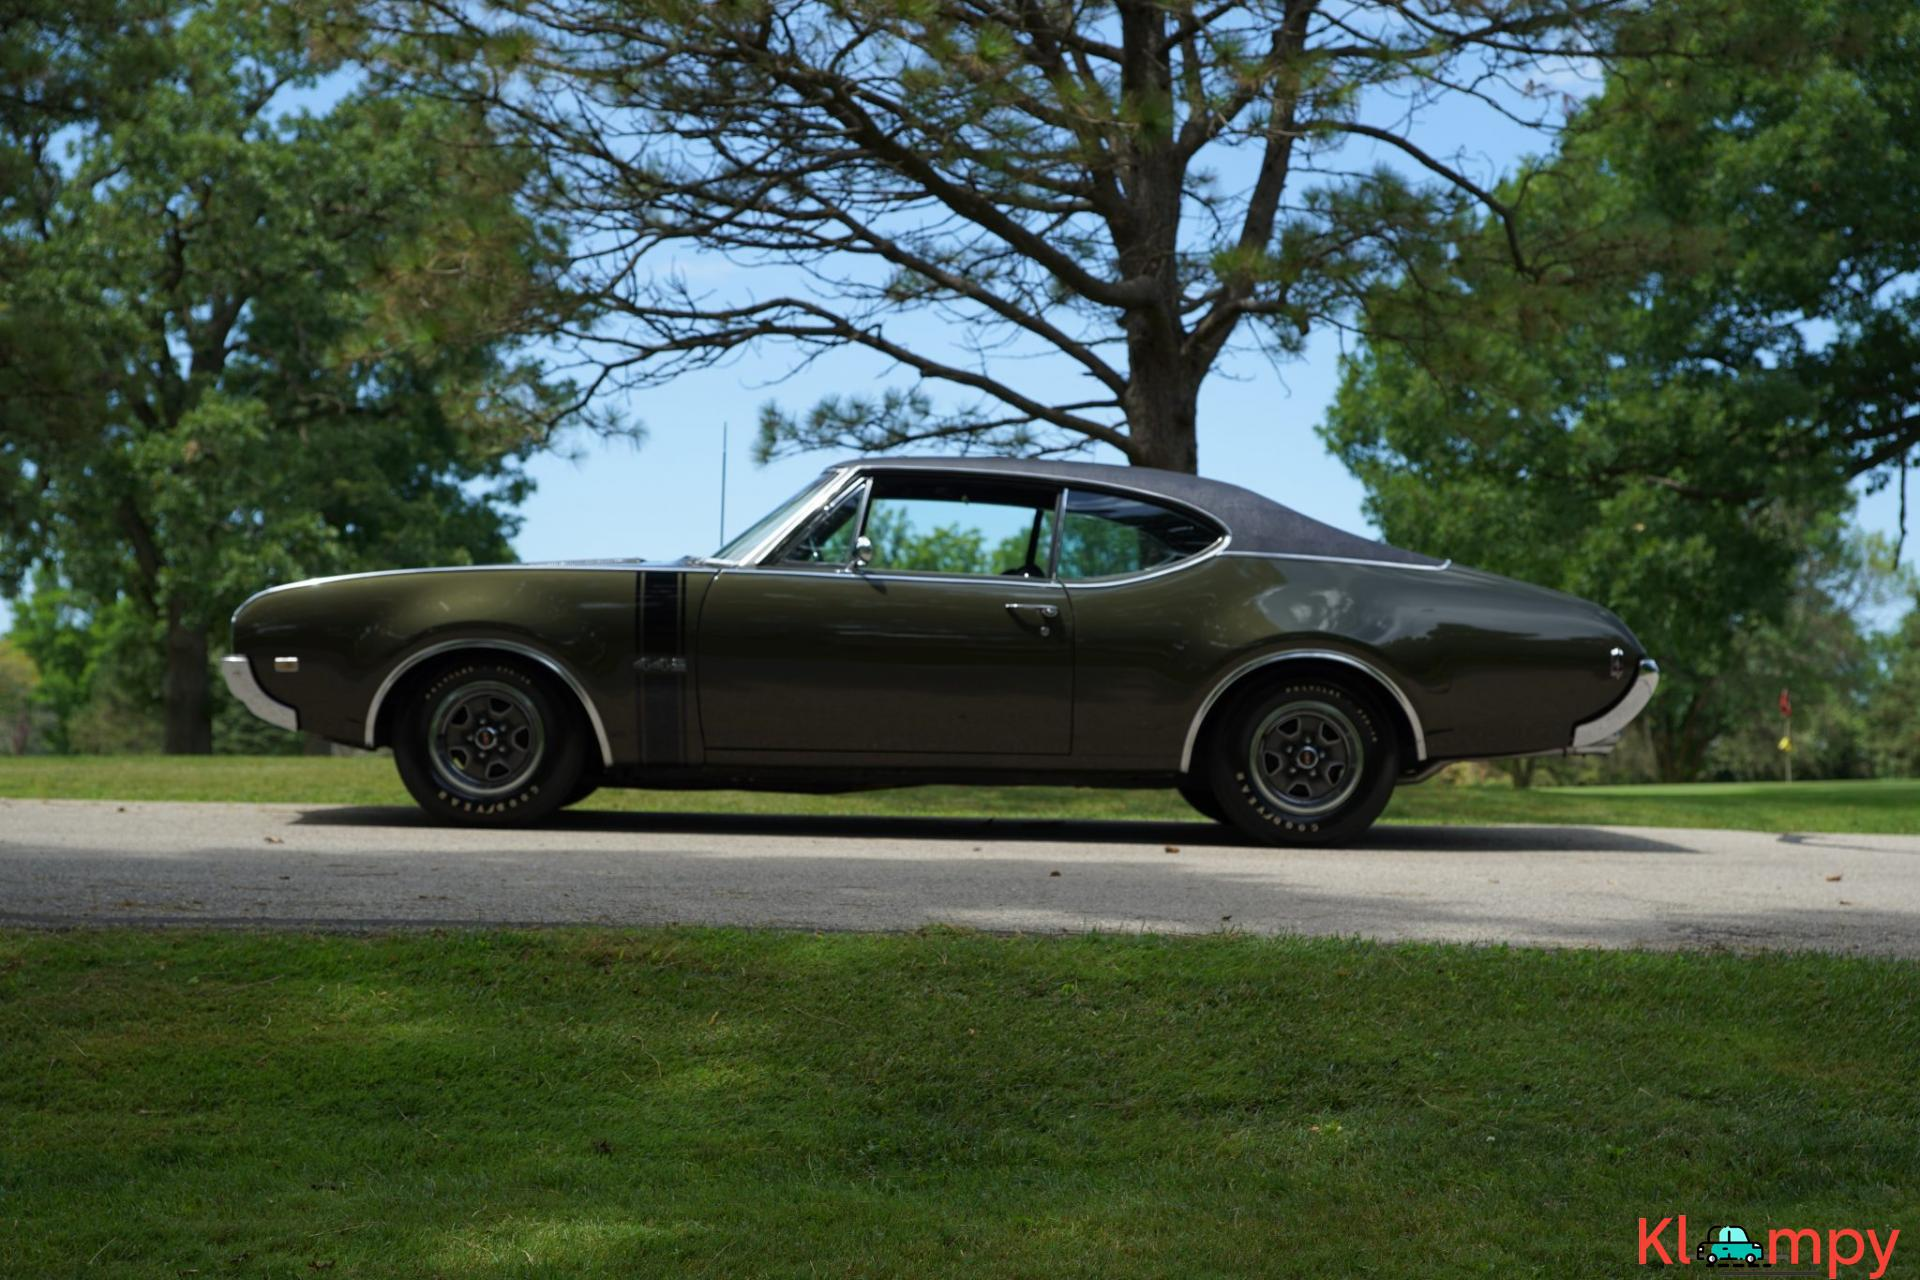 1968 Oldsmobile 442 Holiday Coupe Jade Gold - 8/28